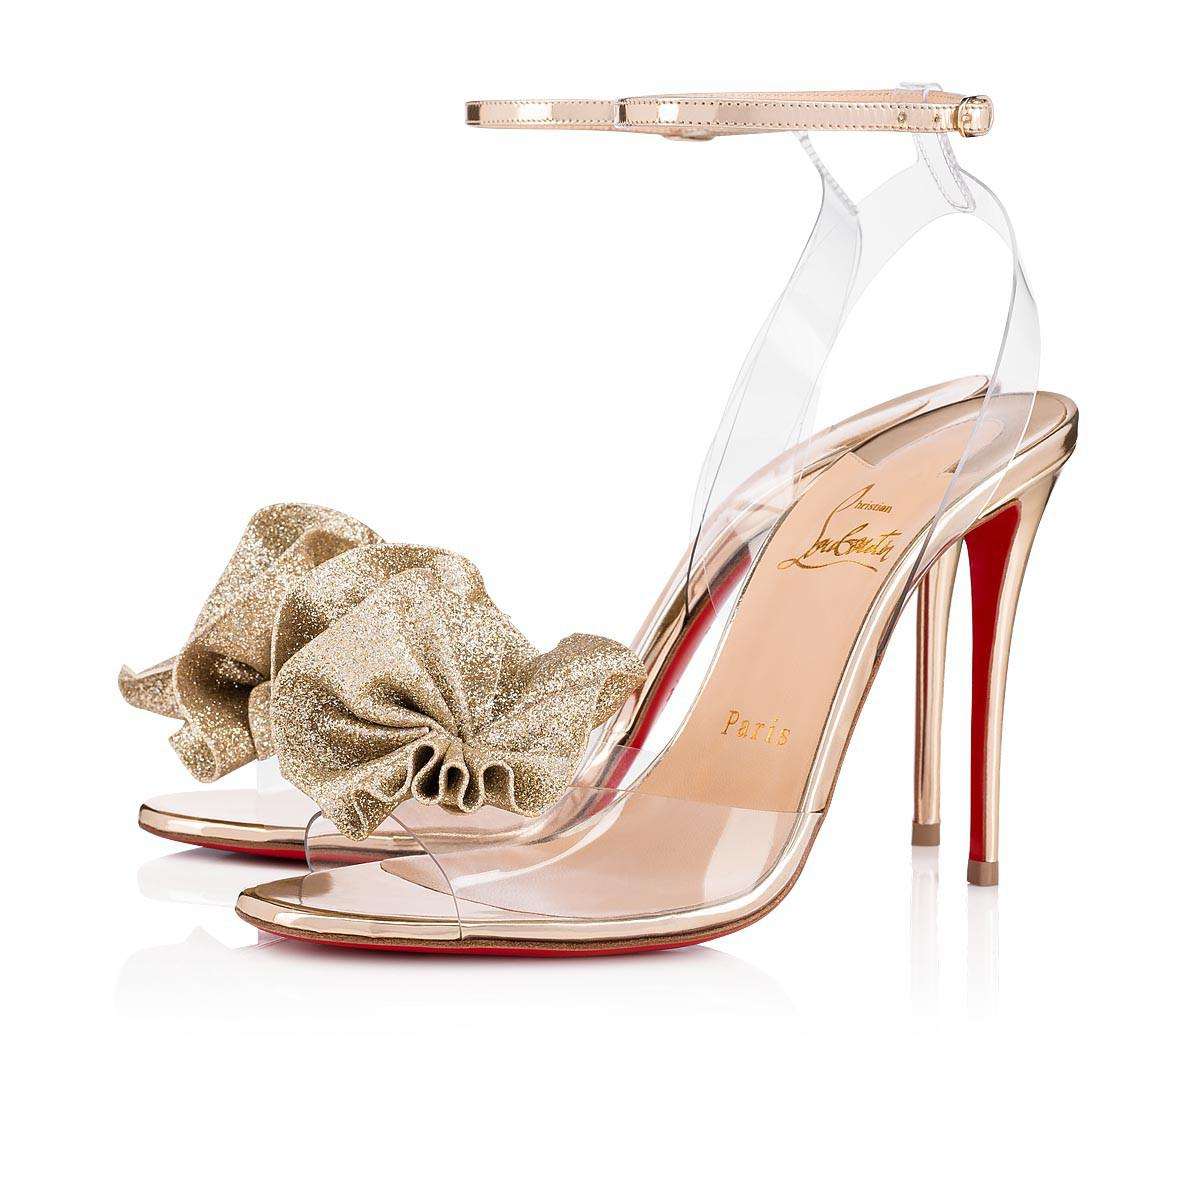 3ed4ed00deb Christian Louboutin Fossiliza Glitter Tonic pvc 100 Version Light ...